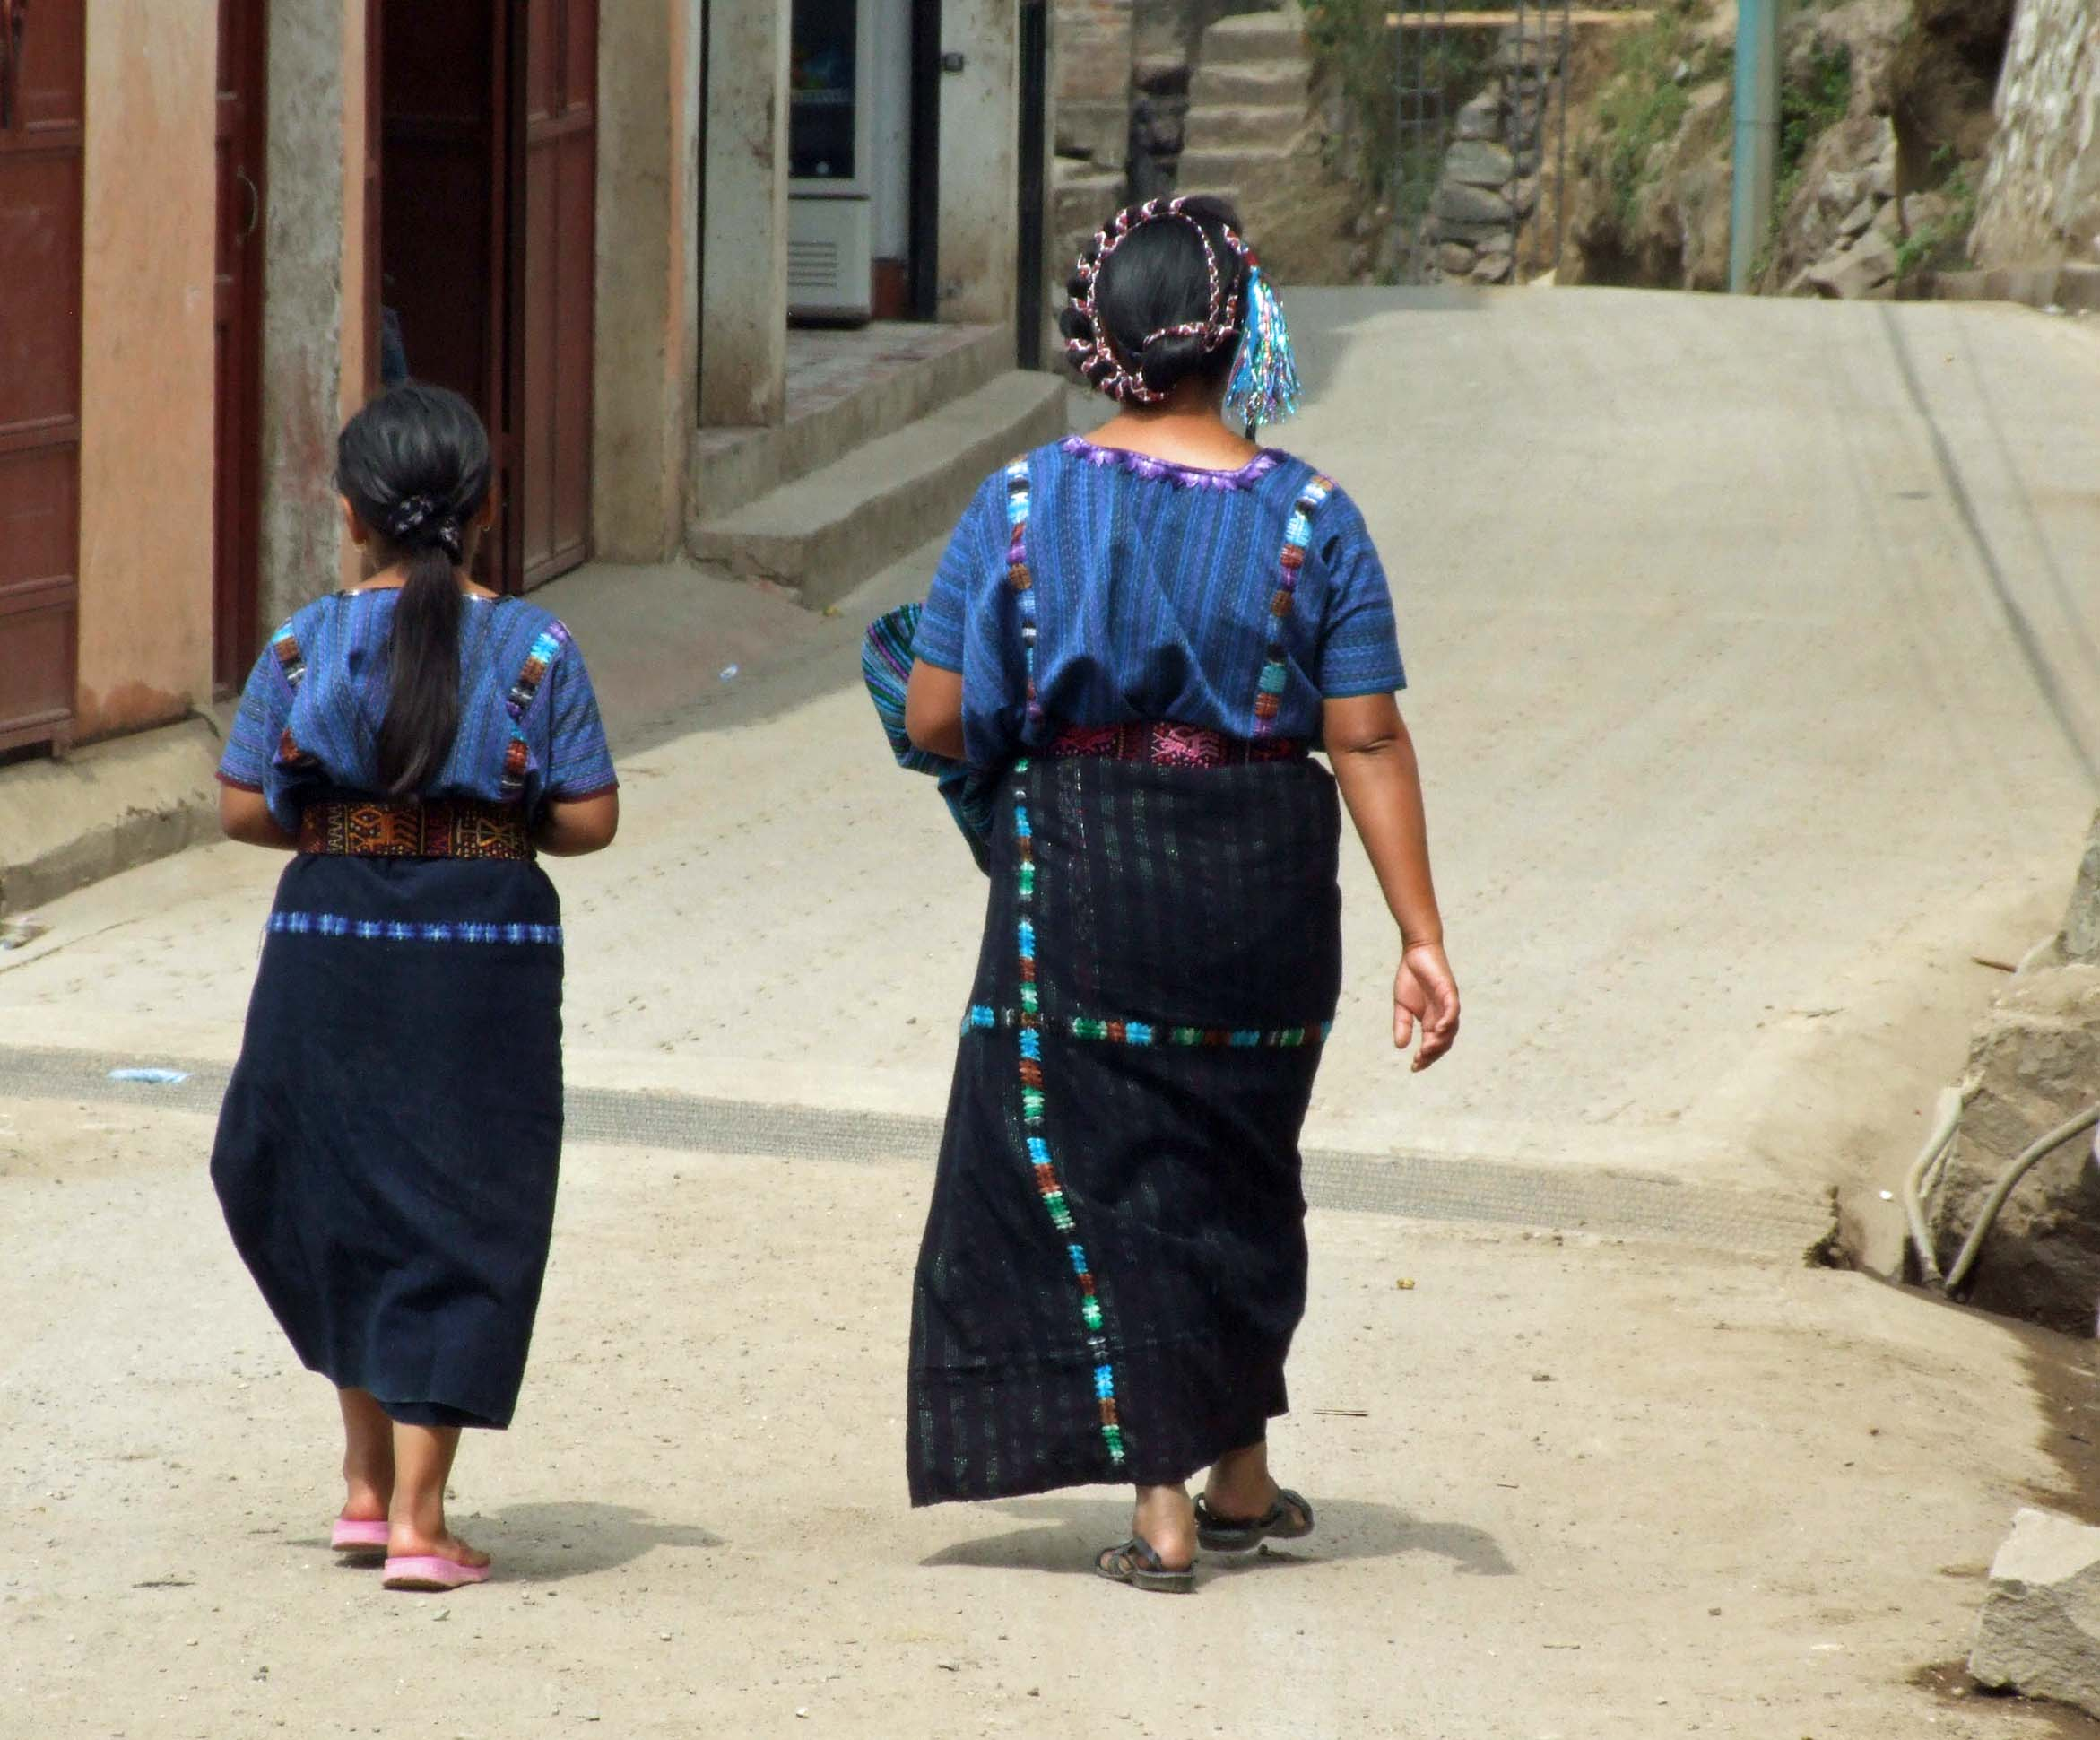 Two women in traditional blue clothing walking along a street